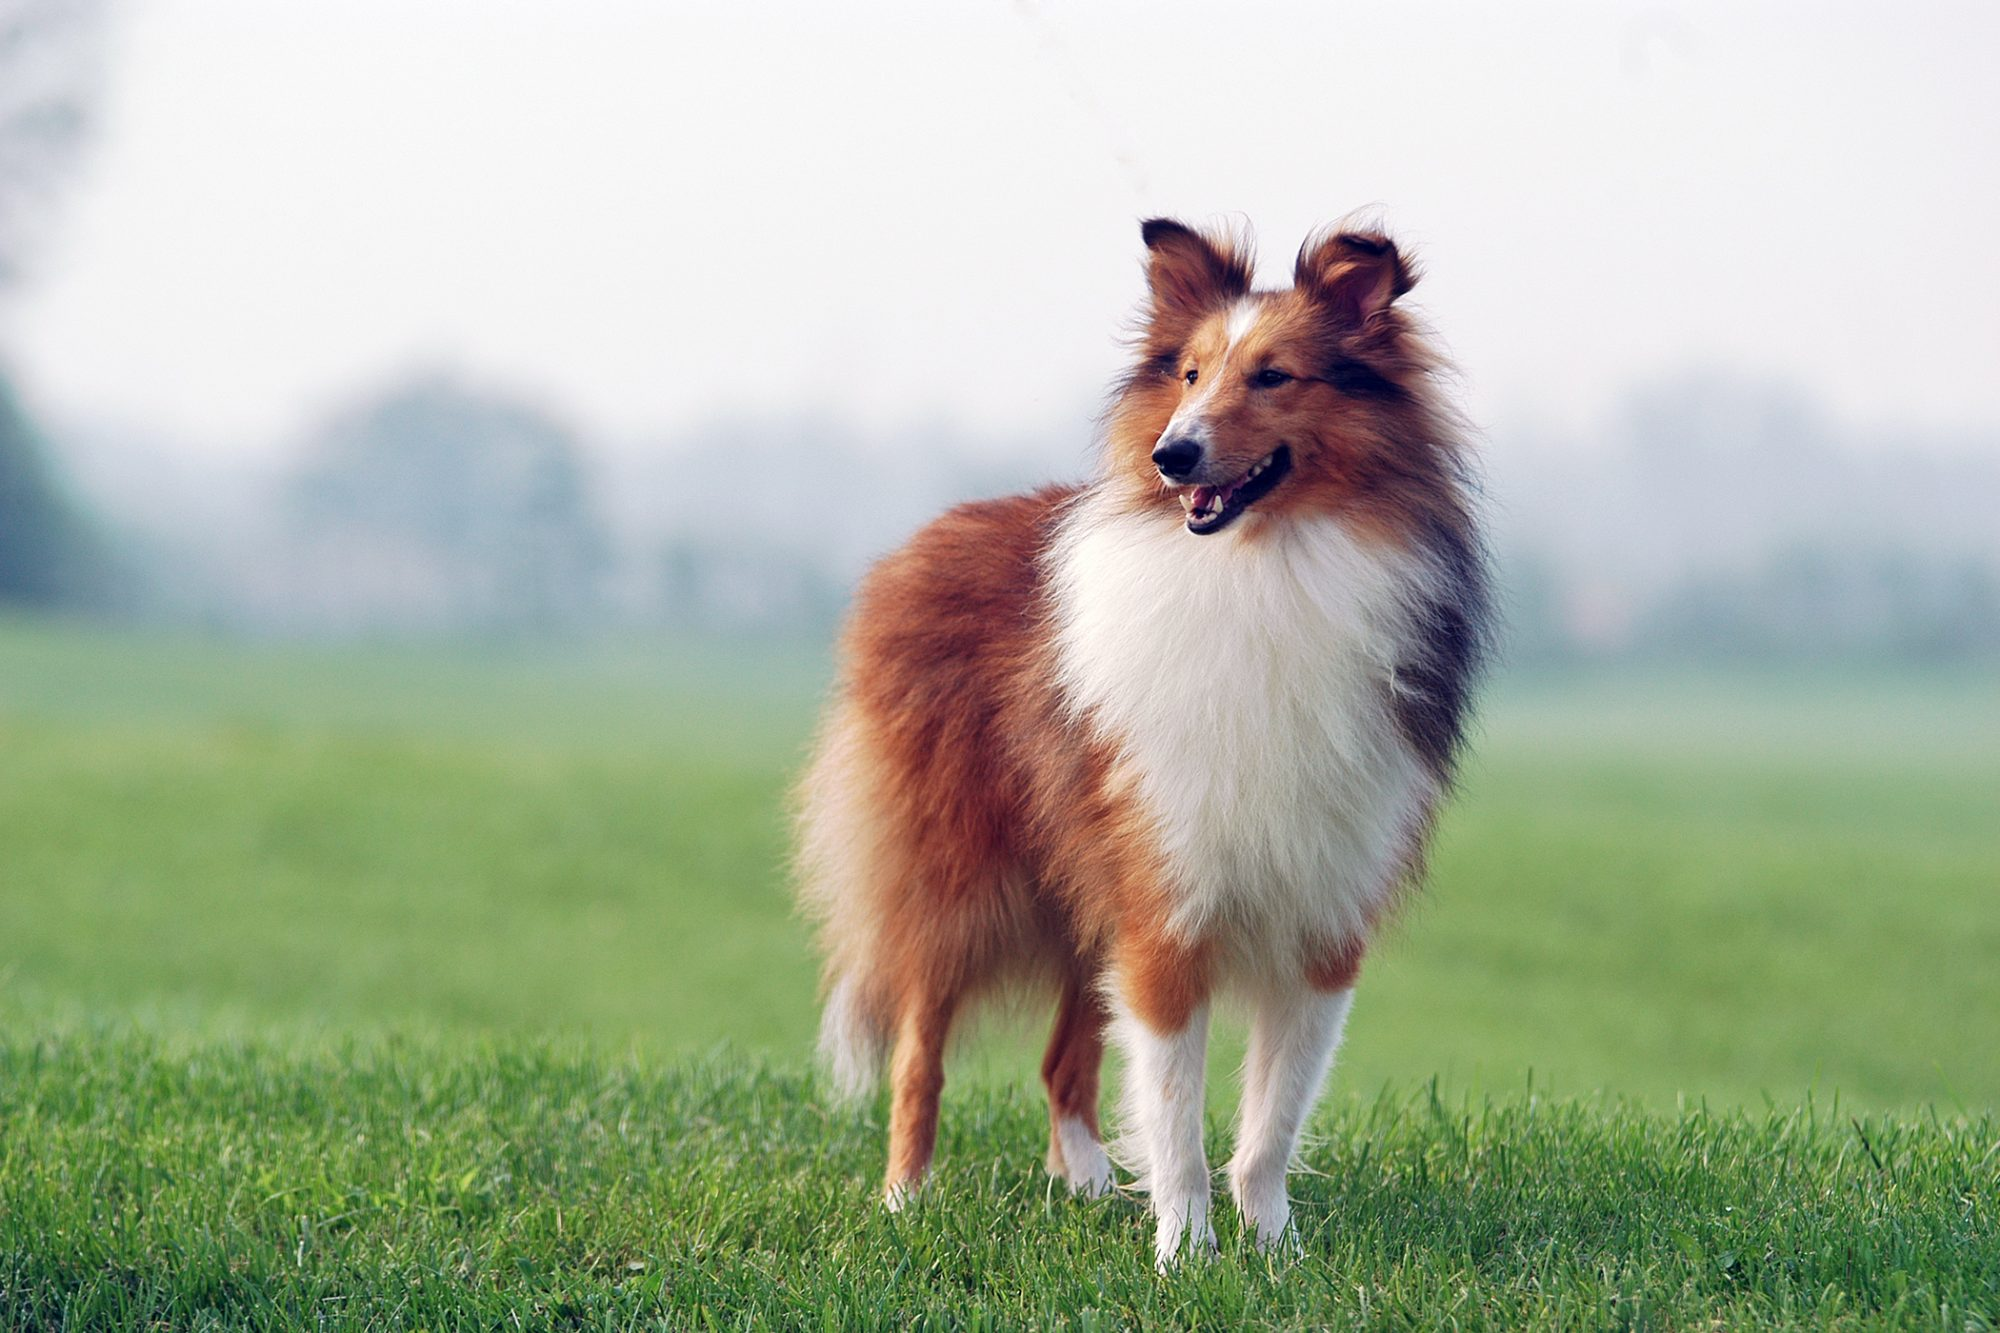 Collie standing in a grassy field